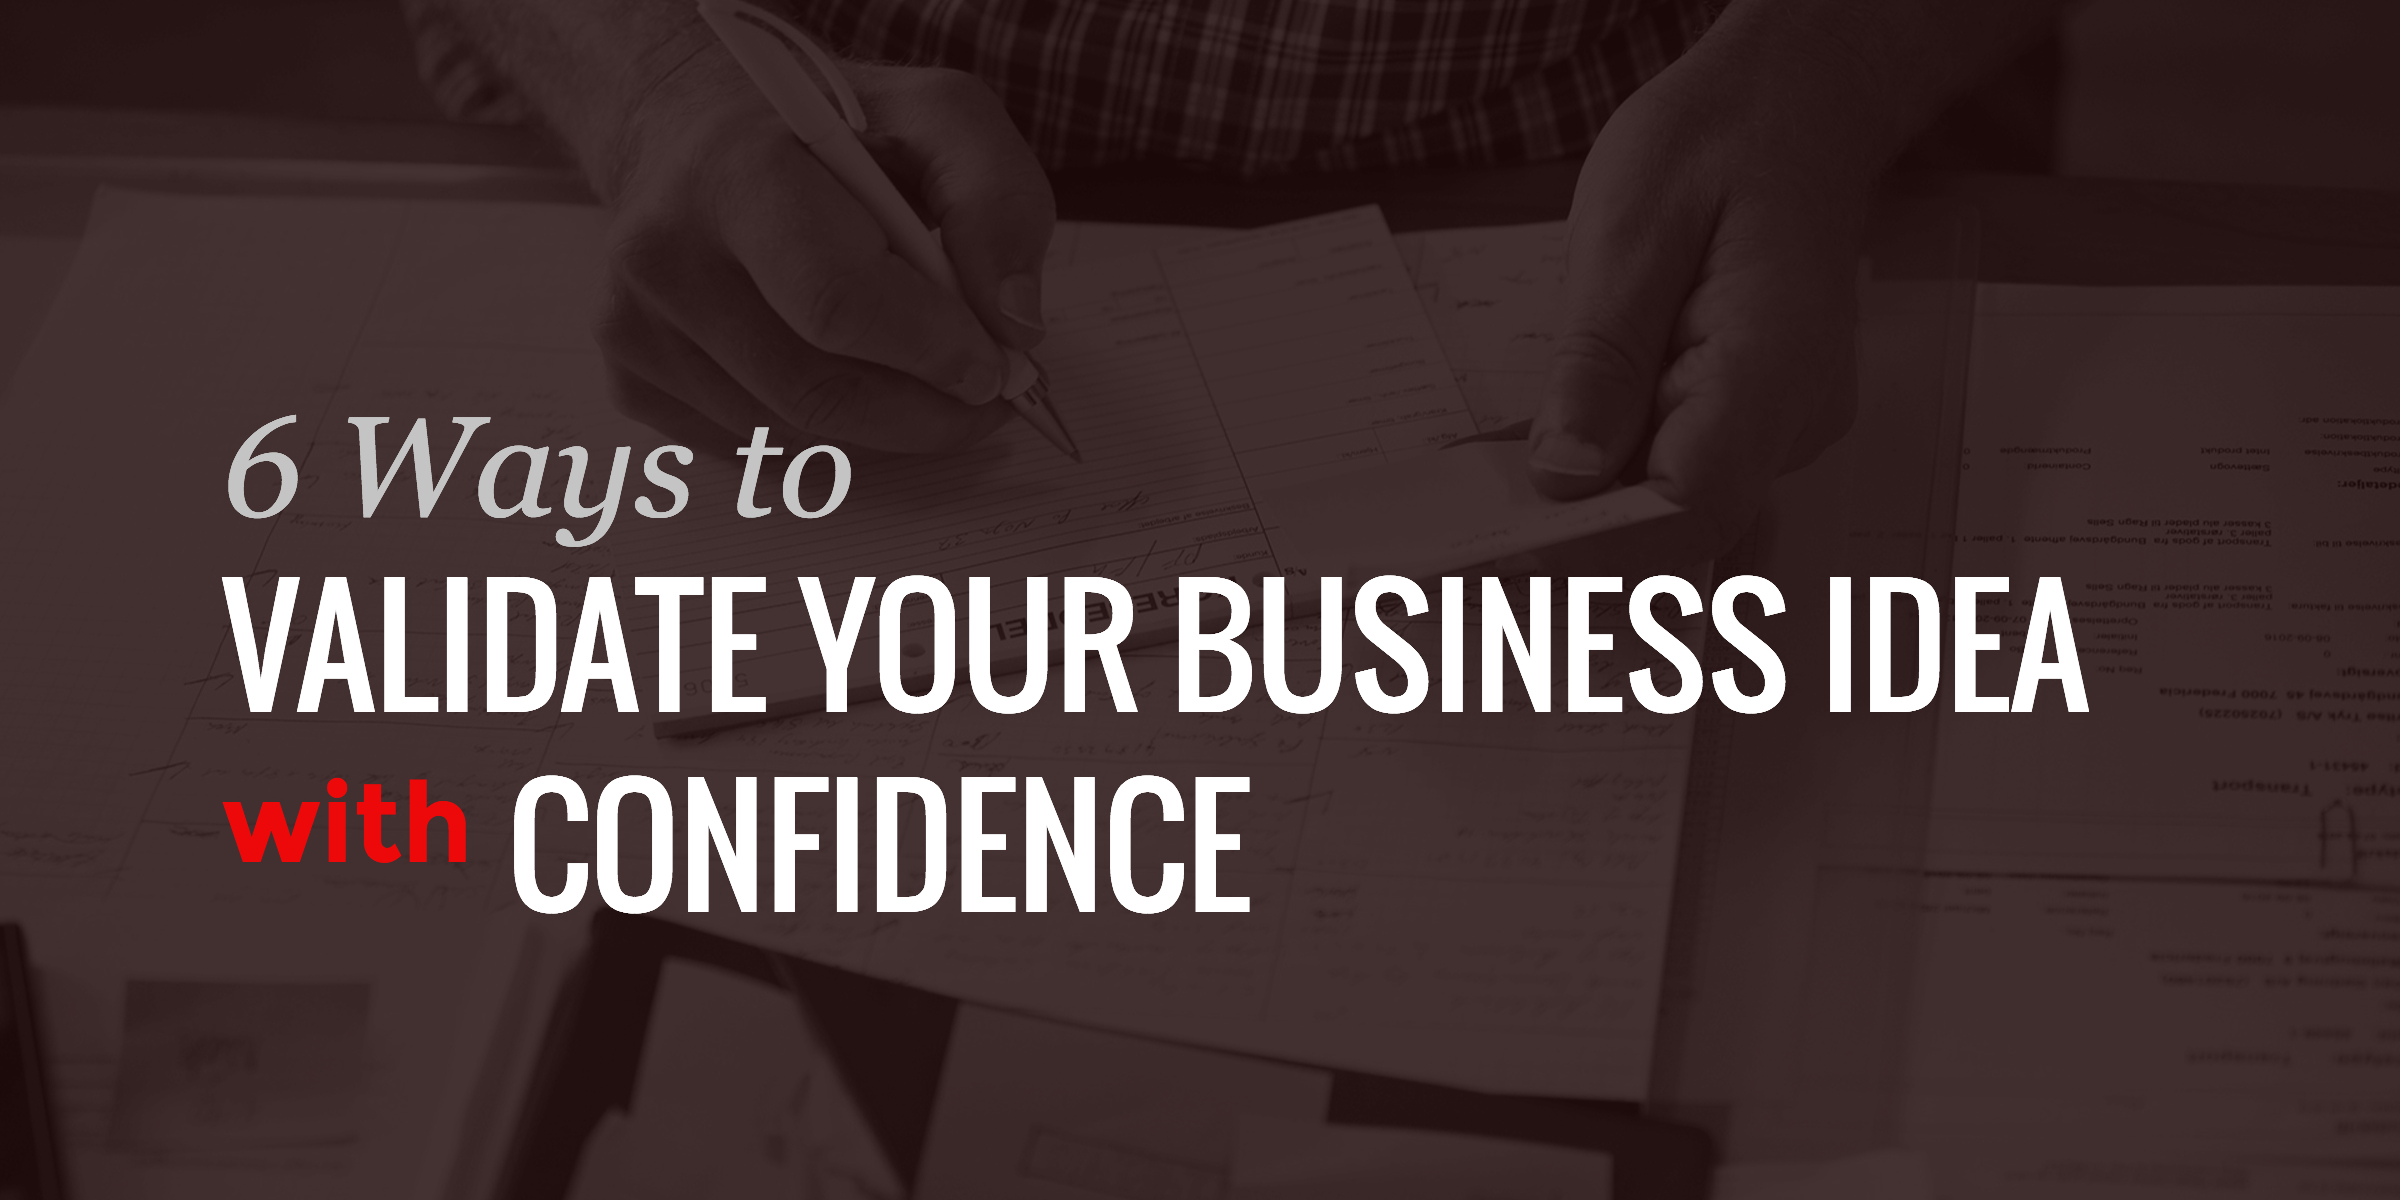 6 Ways to Validate Your New Business Idea with Confidence